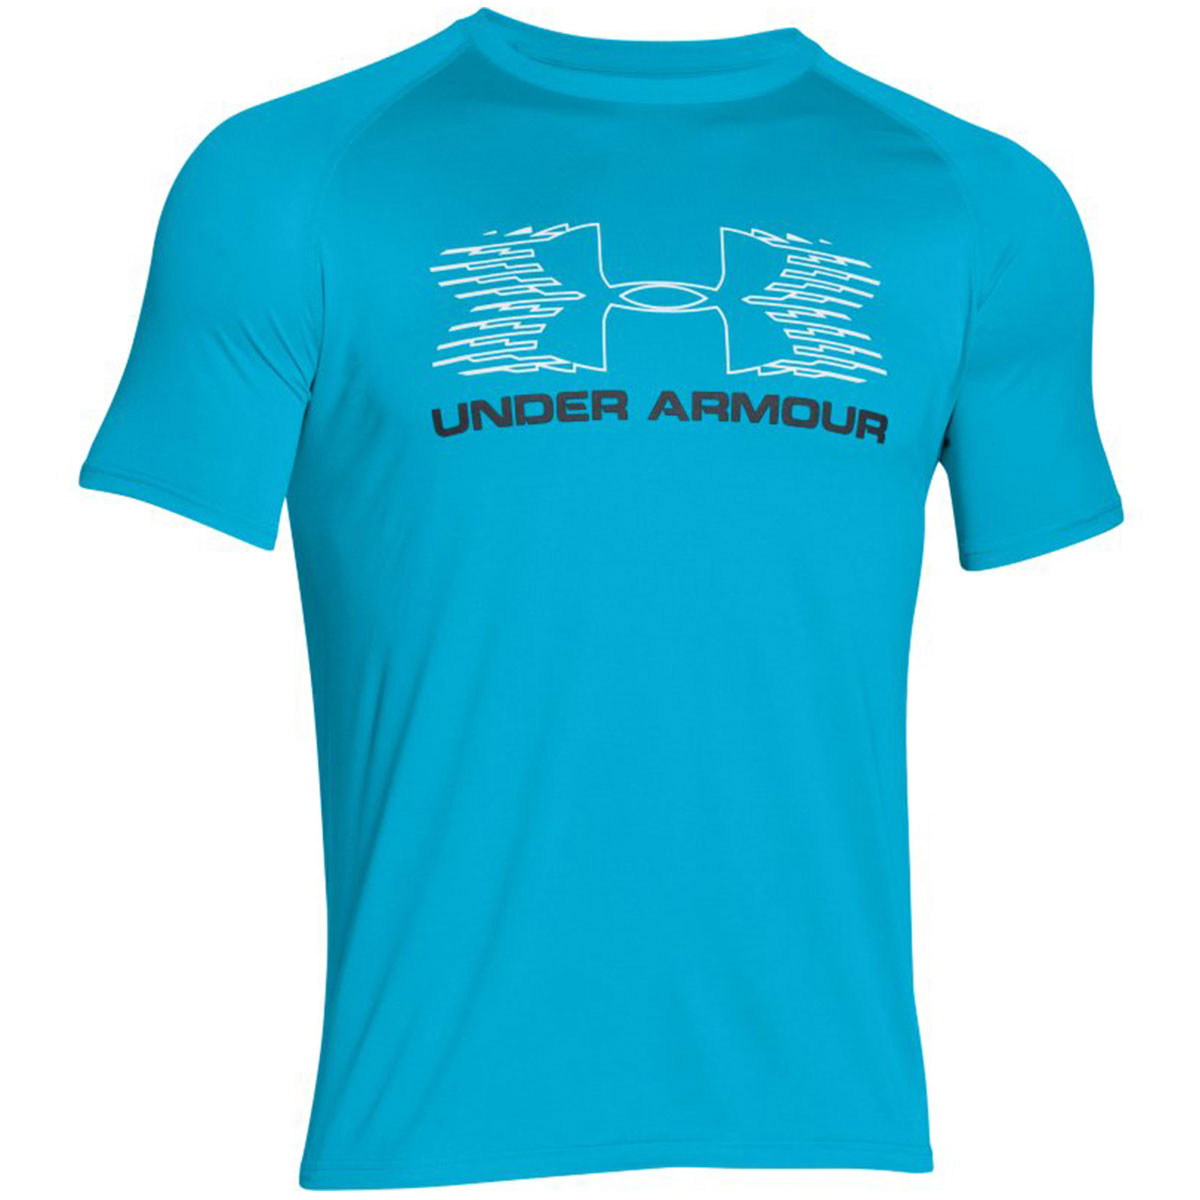 Under Armour 2016 Mens Ua Tech Movement Sportstyle Short